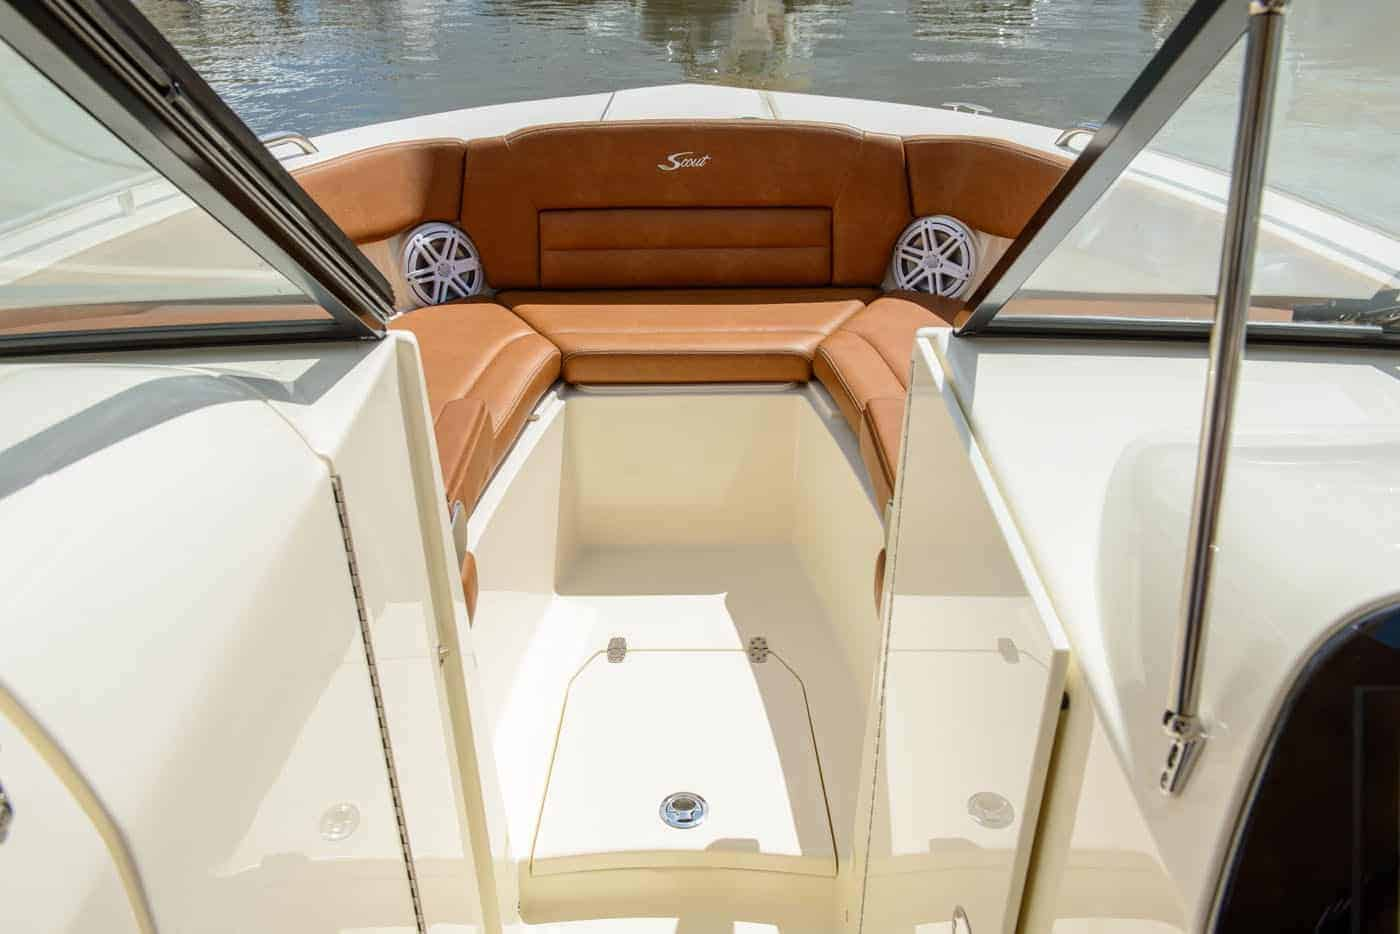 255D bow seating without filler cushion